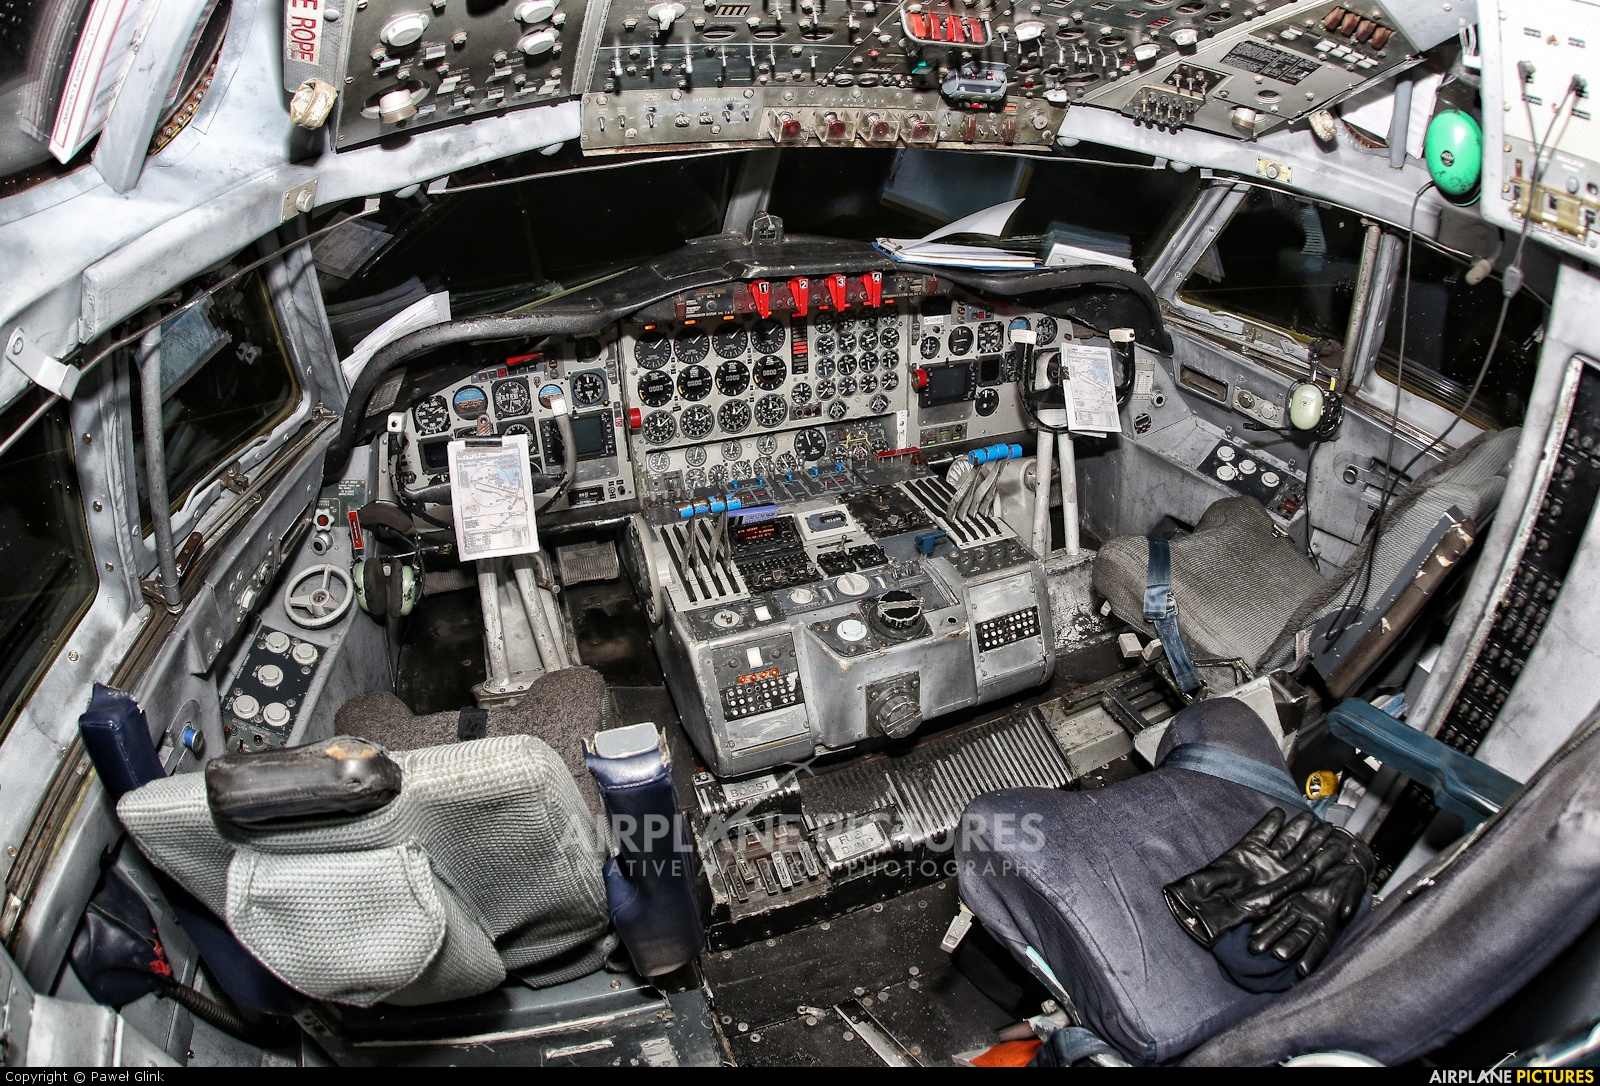 Lockheed Electra Cockpit - Bing images